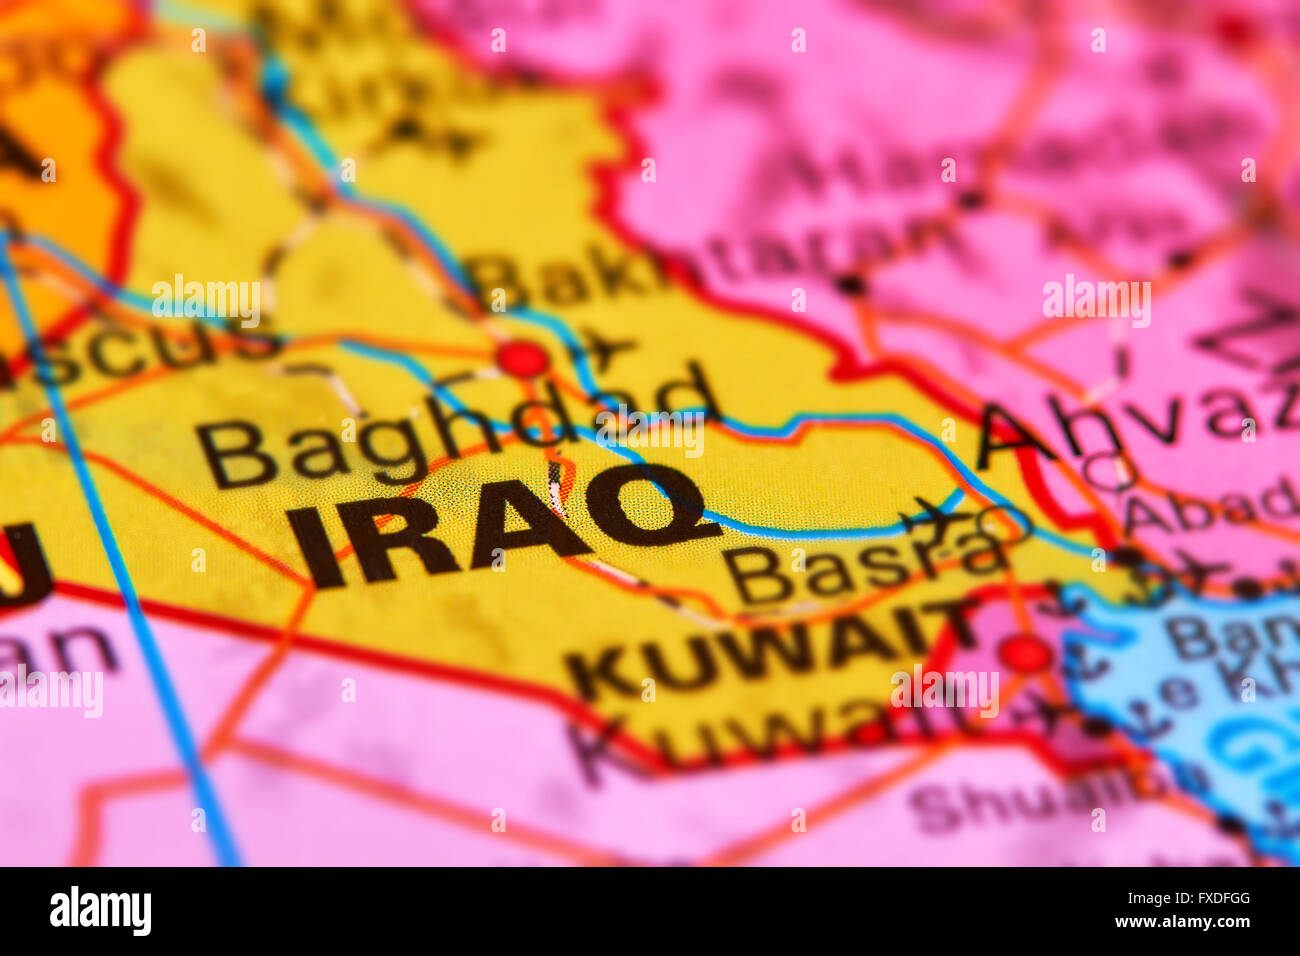 Iraq, Country in the Middle East on the World Map - Stock Image